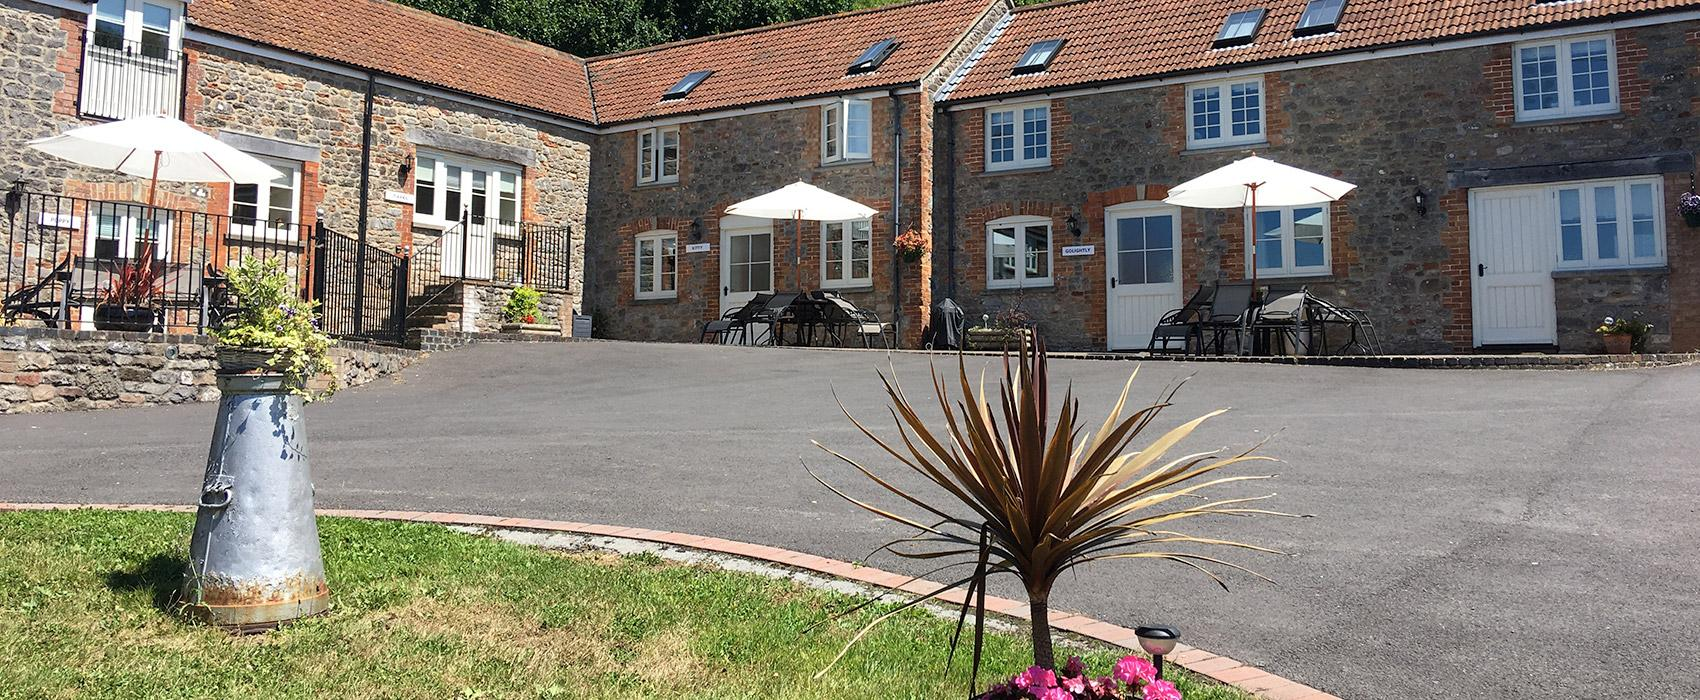 Webbington Farm Holiday Cottages